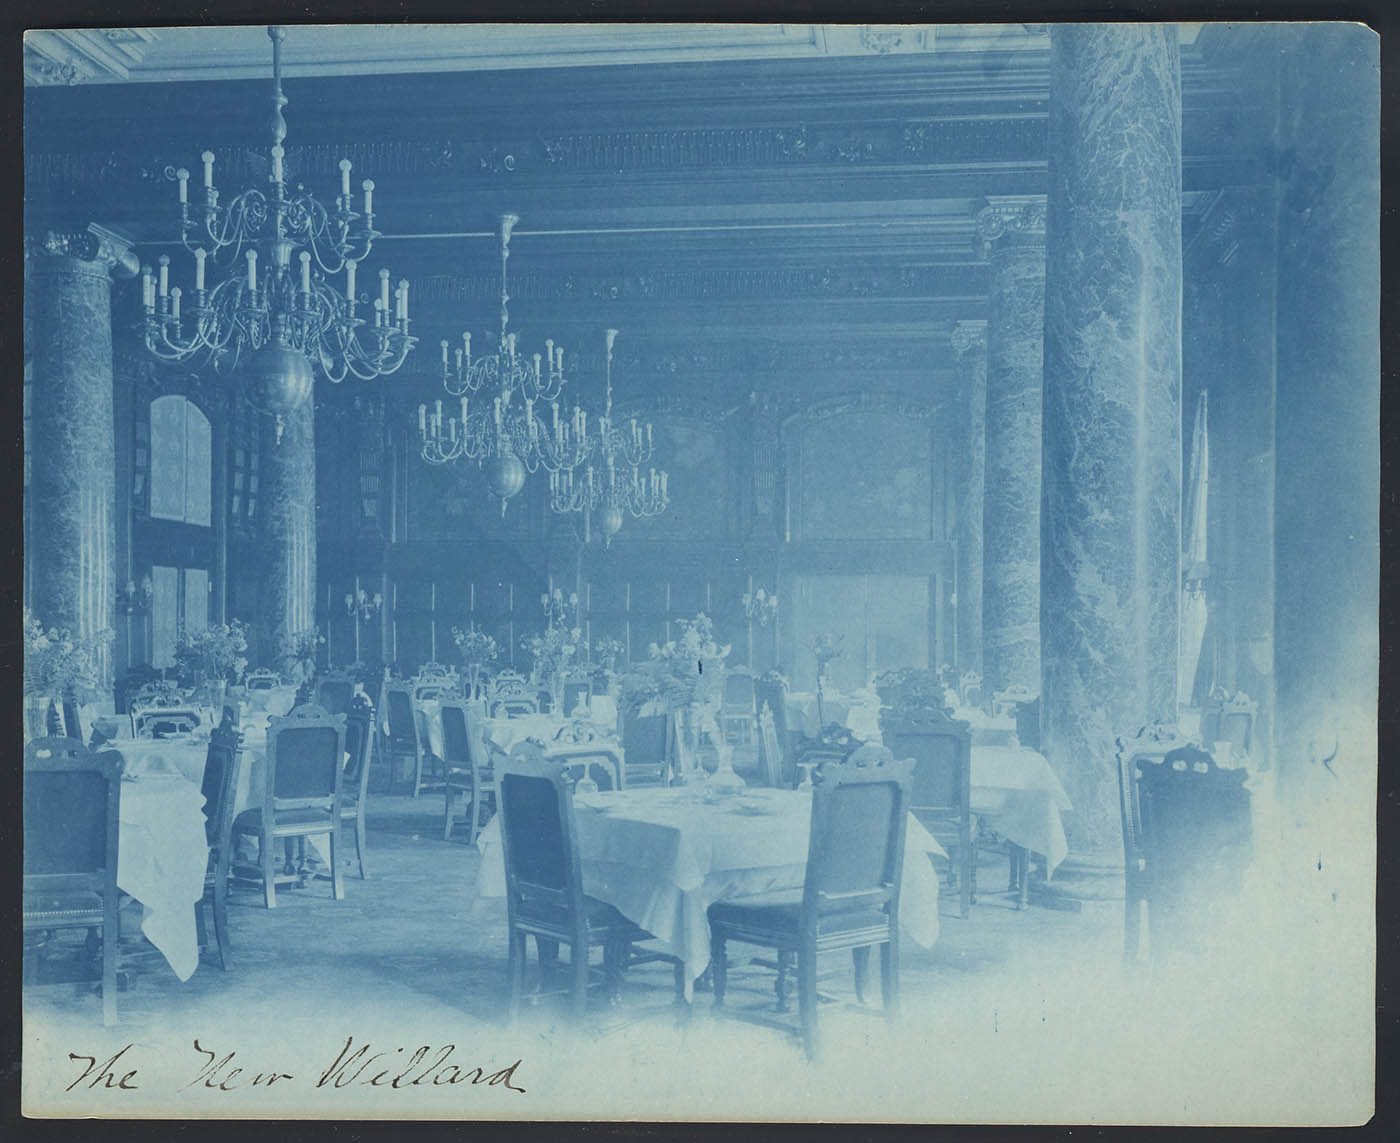 Willard Hotel 1901-1910 by Frances Benjamin Johnston